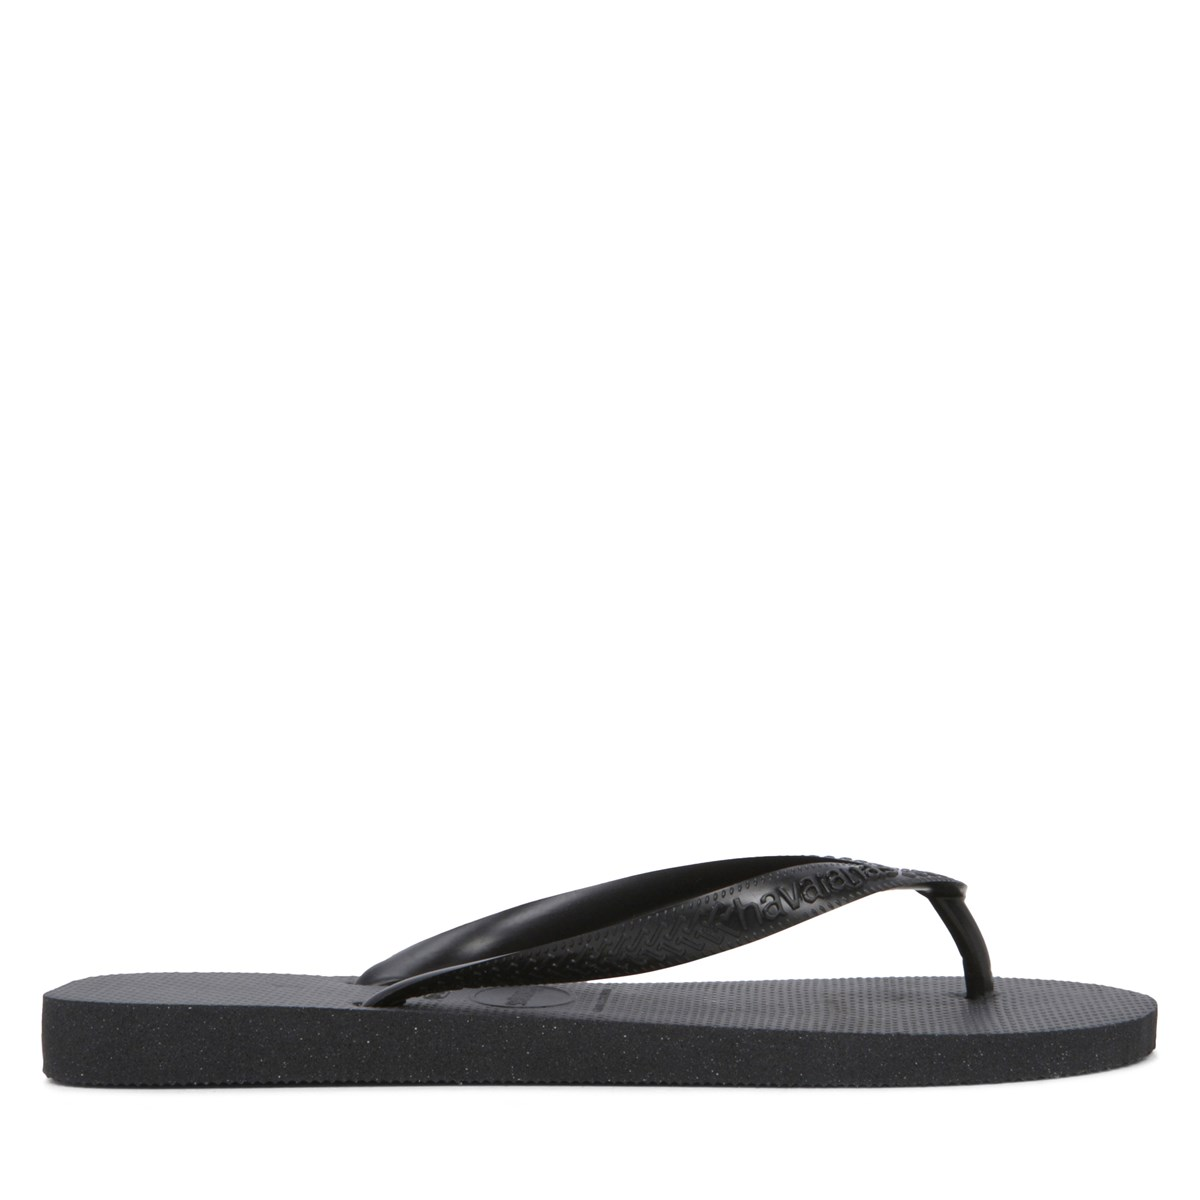 Men's Top Flip-Flop in Black